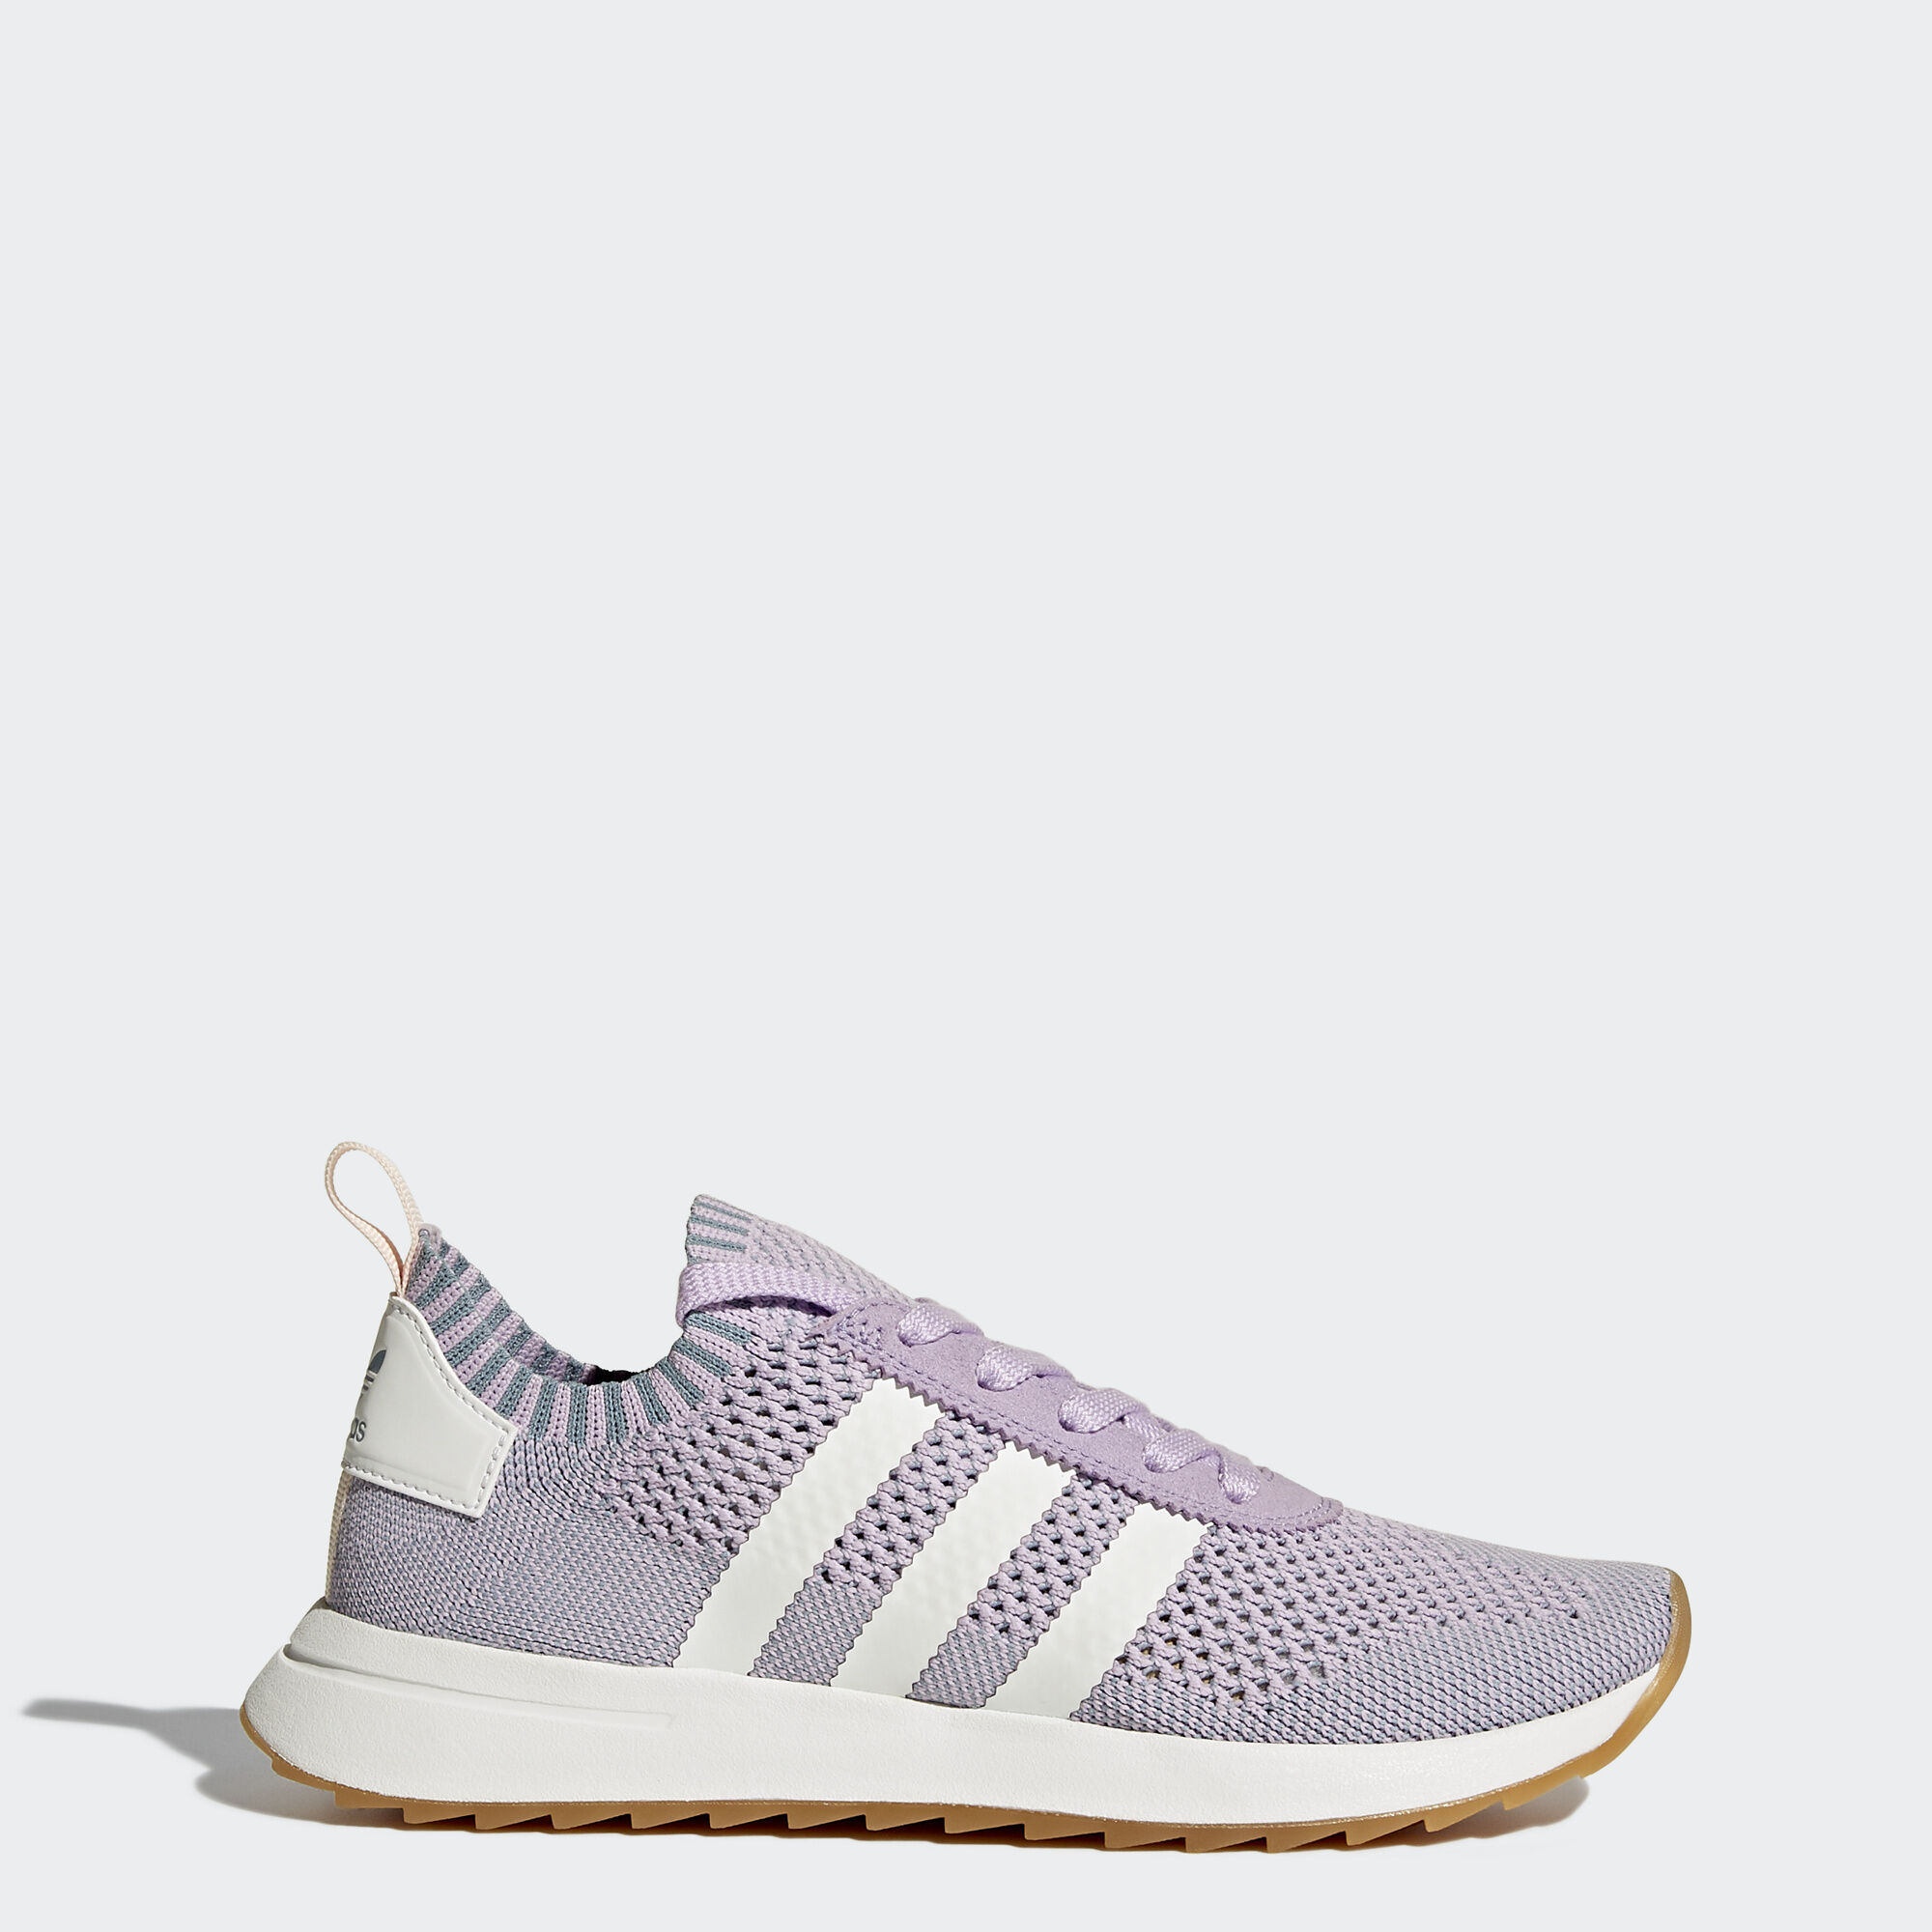 adidas Flashback Primeknit Shoes - Purple | adidas US